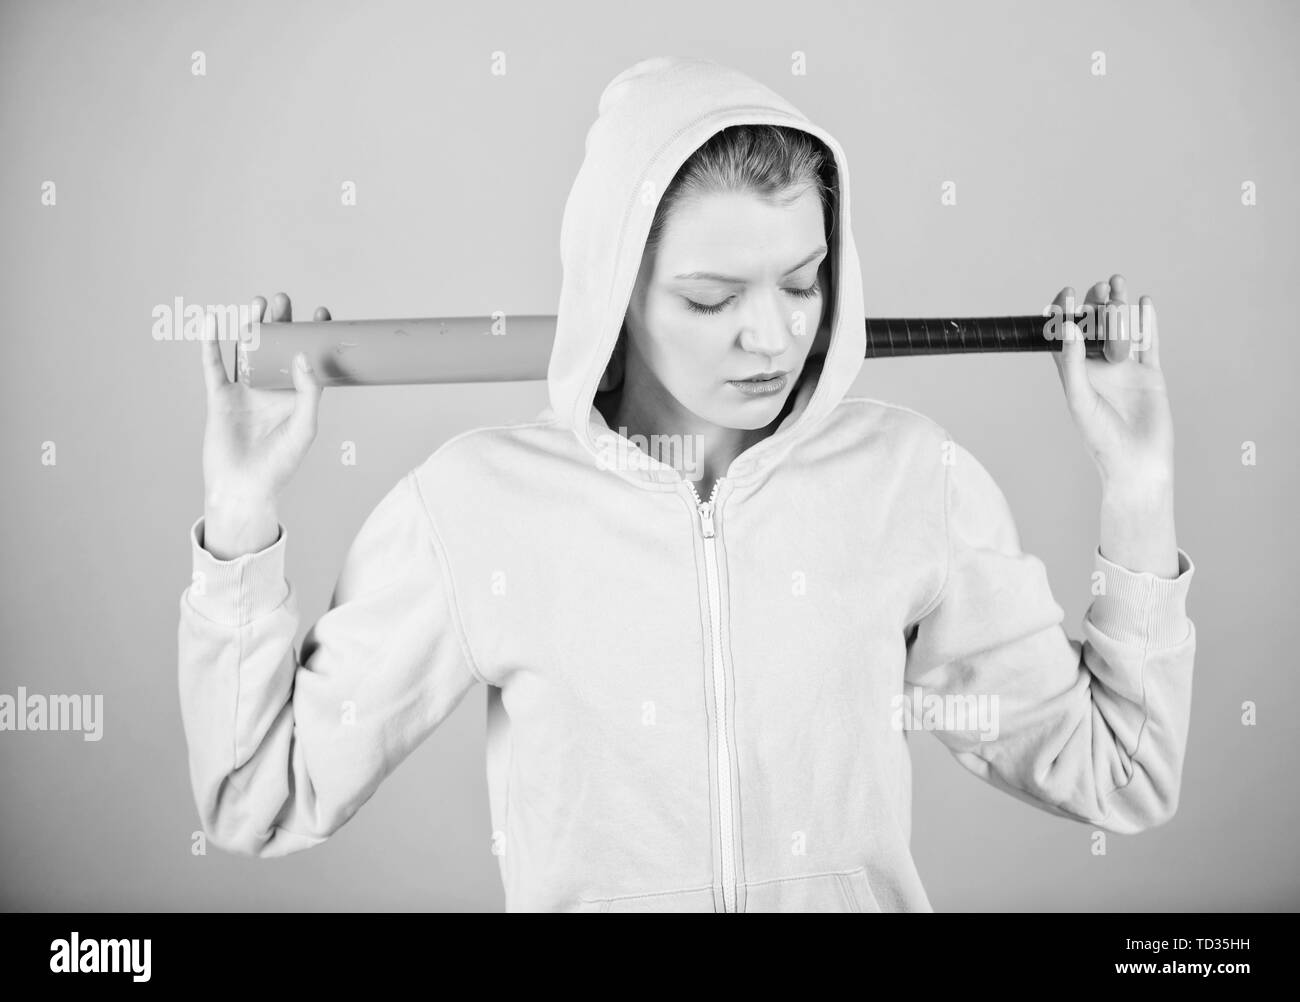 Street life. Sporty girl fighter. Fighting with aggression. Sport equipment. Athletic fitness. aggressive woman with bat. woman workout with baseball bat. clean up the streets. street style woman. - Stock Image